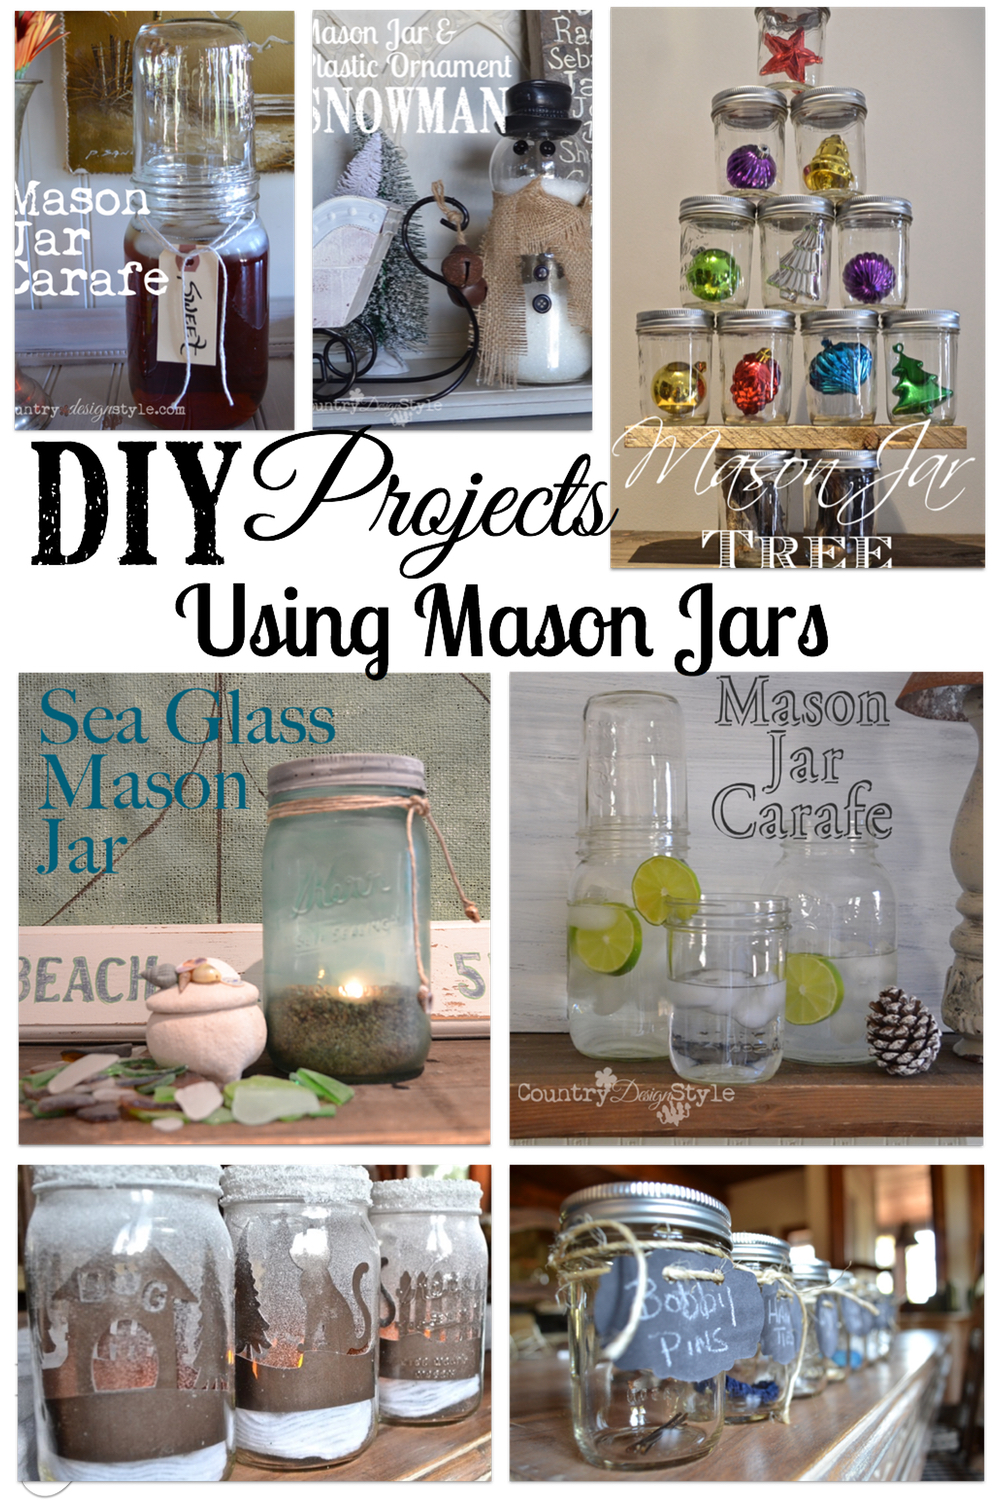 Diy projects with mason jars - Easy To Find Diy By Material Used In Making Projects This Group Of Diy Projects